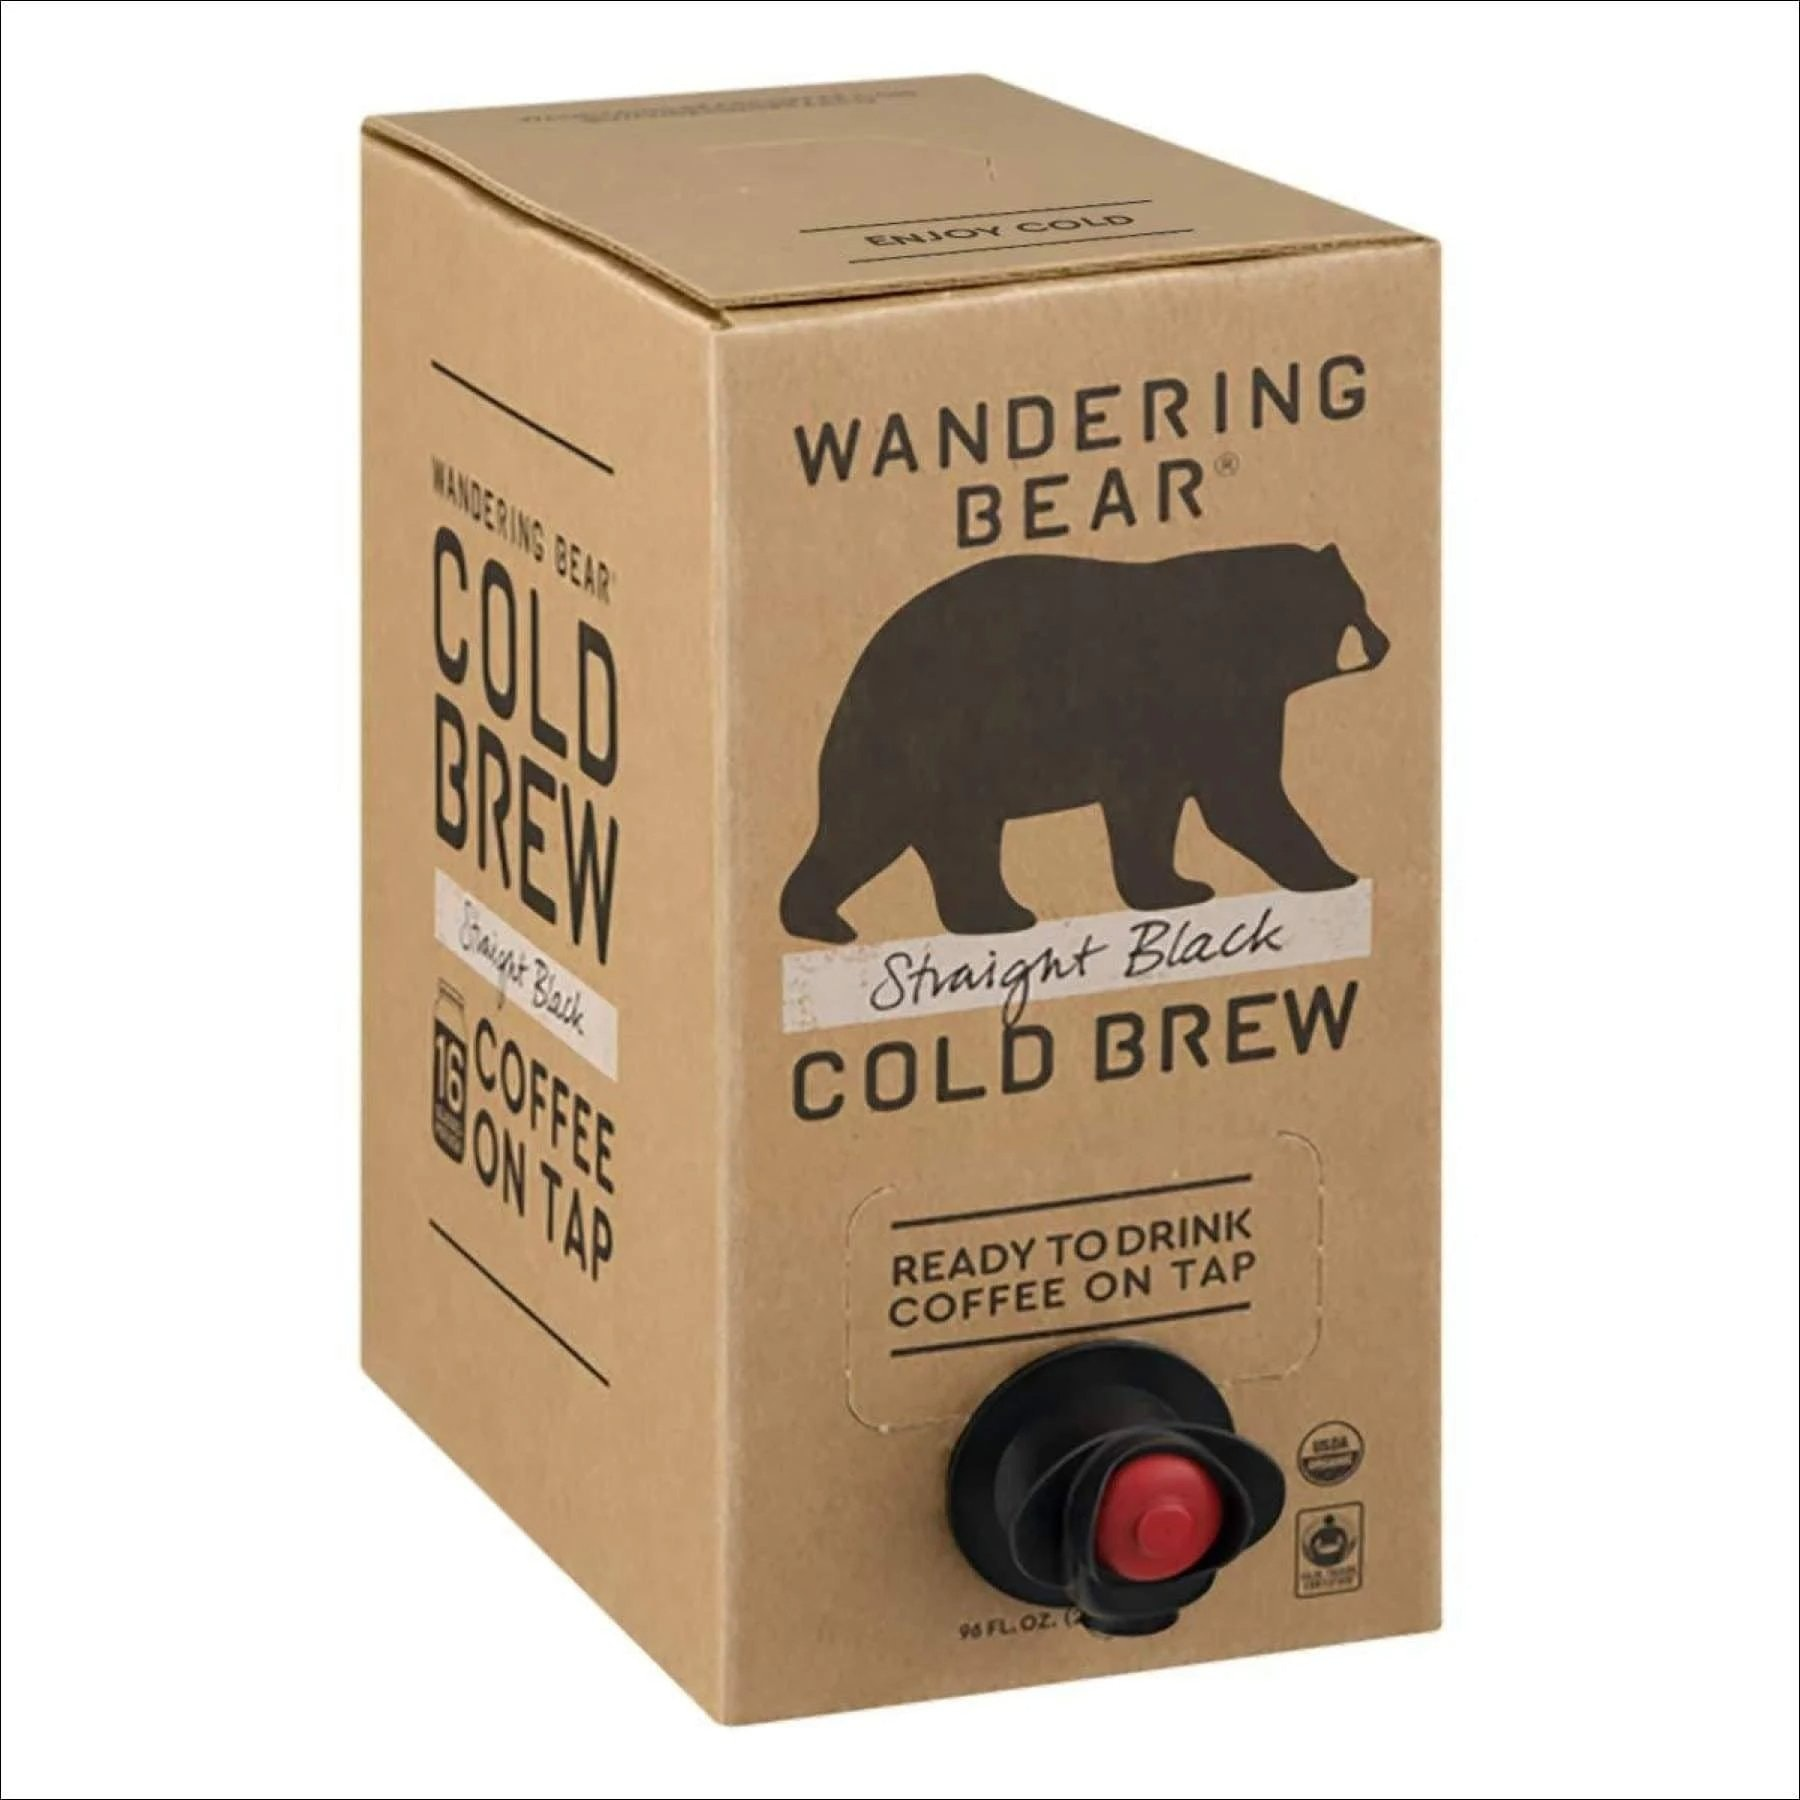 Wandering Bear Cold Brew on Tap